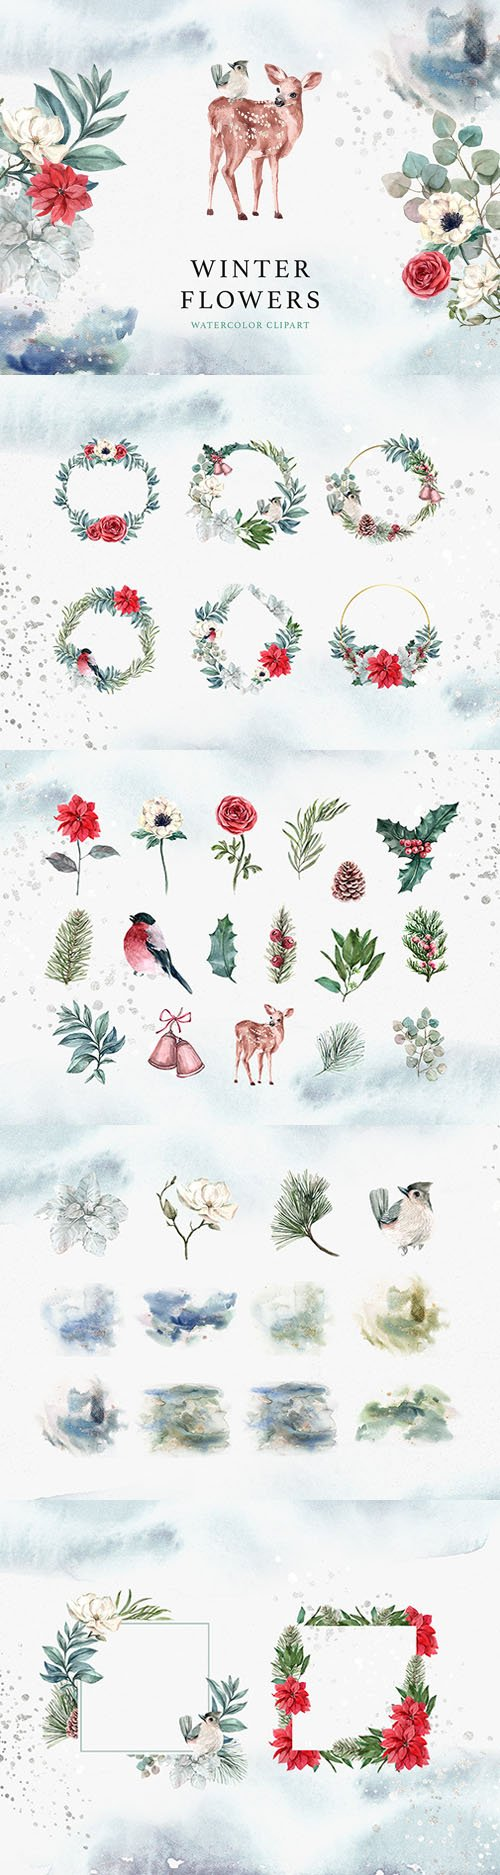 Winter Flowers Watercolor PNG Clipart